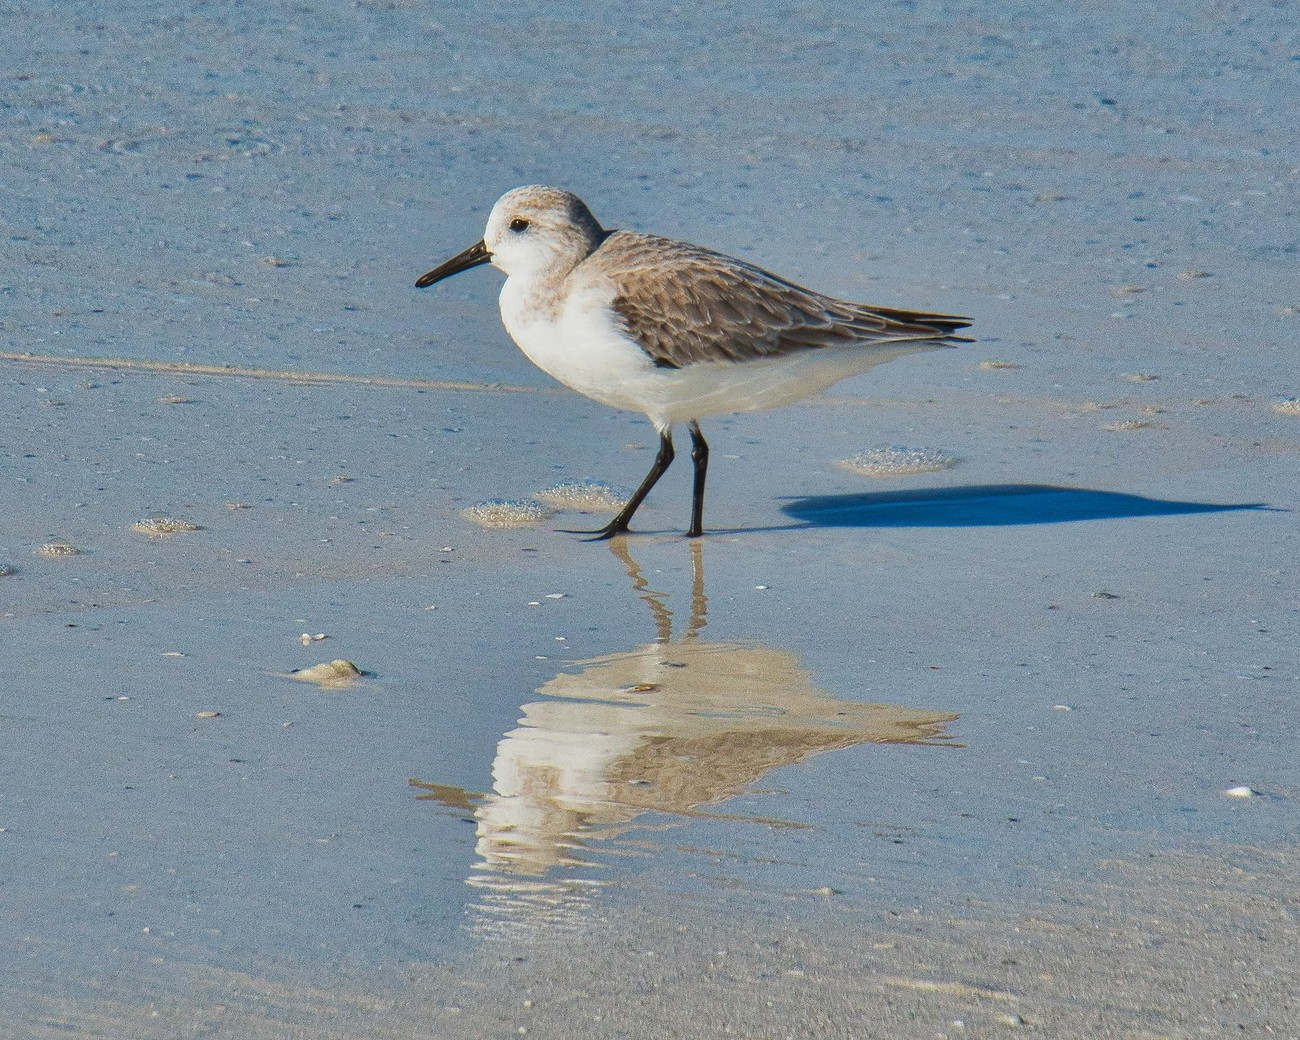 Sanderling, a small sandpiper in winter plumage.  Note differences between this bird and the Least Sandpiper previously posted in my Gallery.  Photo taken on Siesta Key beach